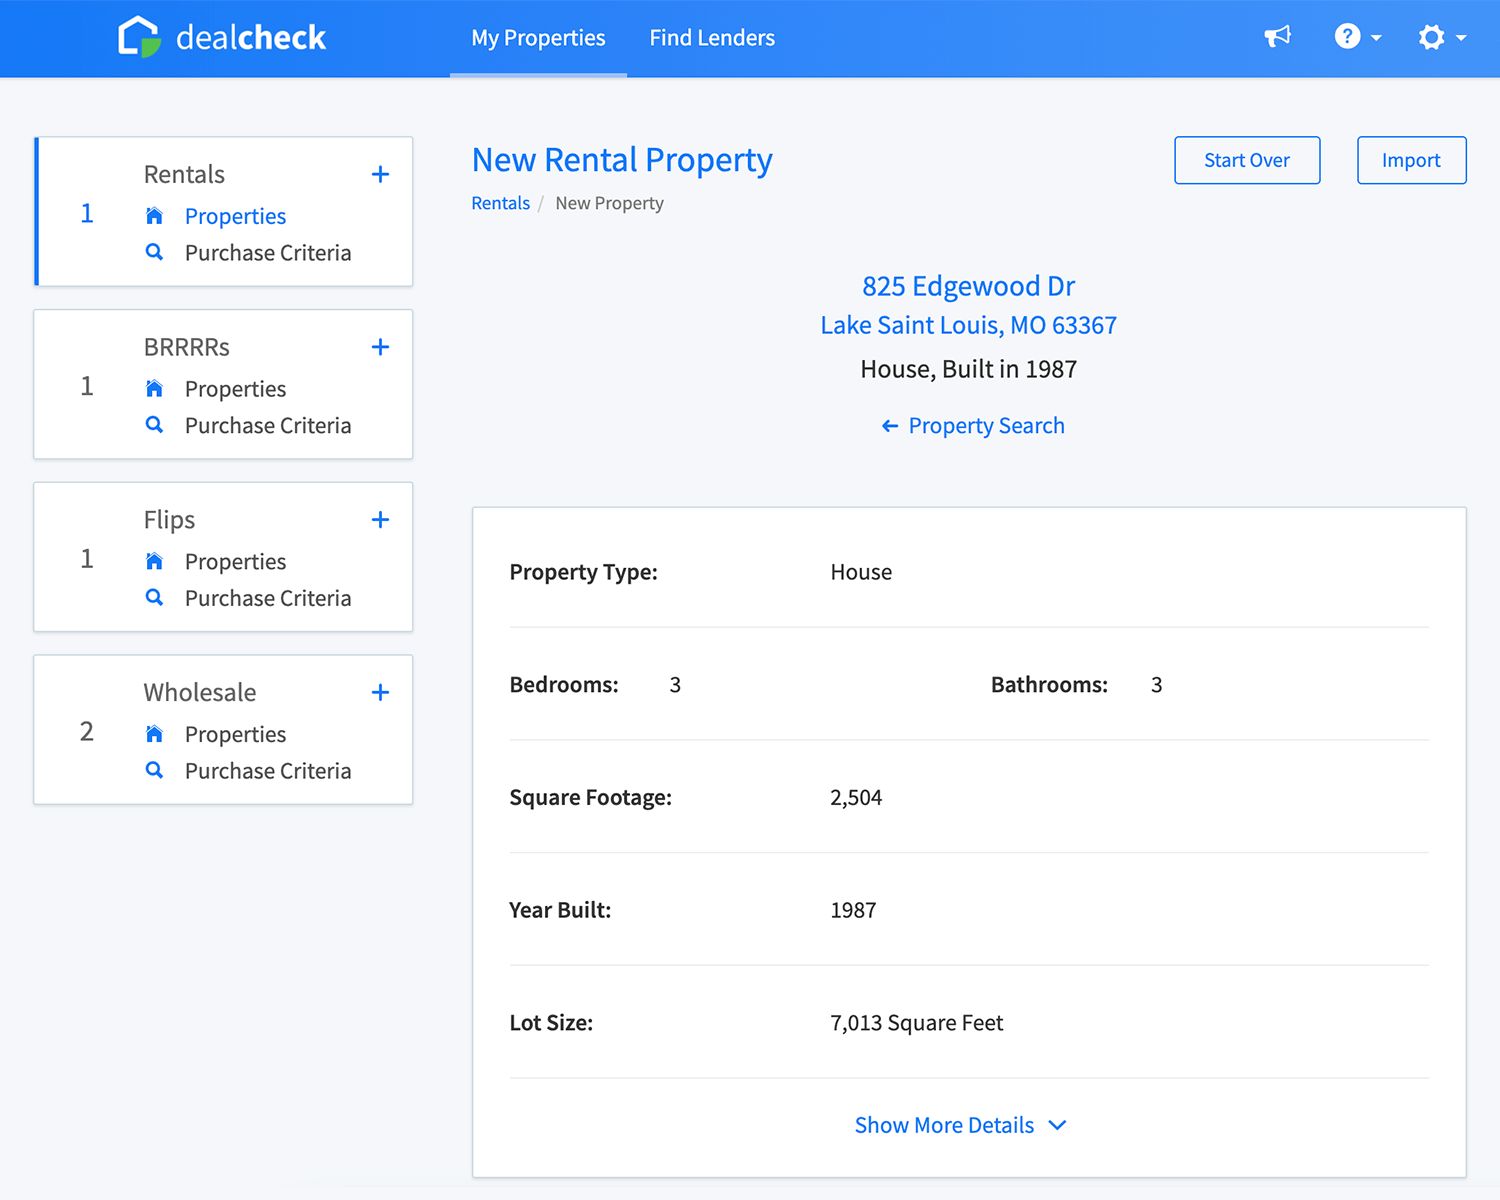 Add to DealCheck link example